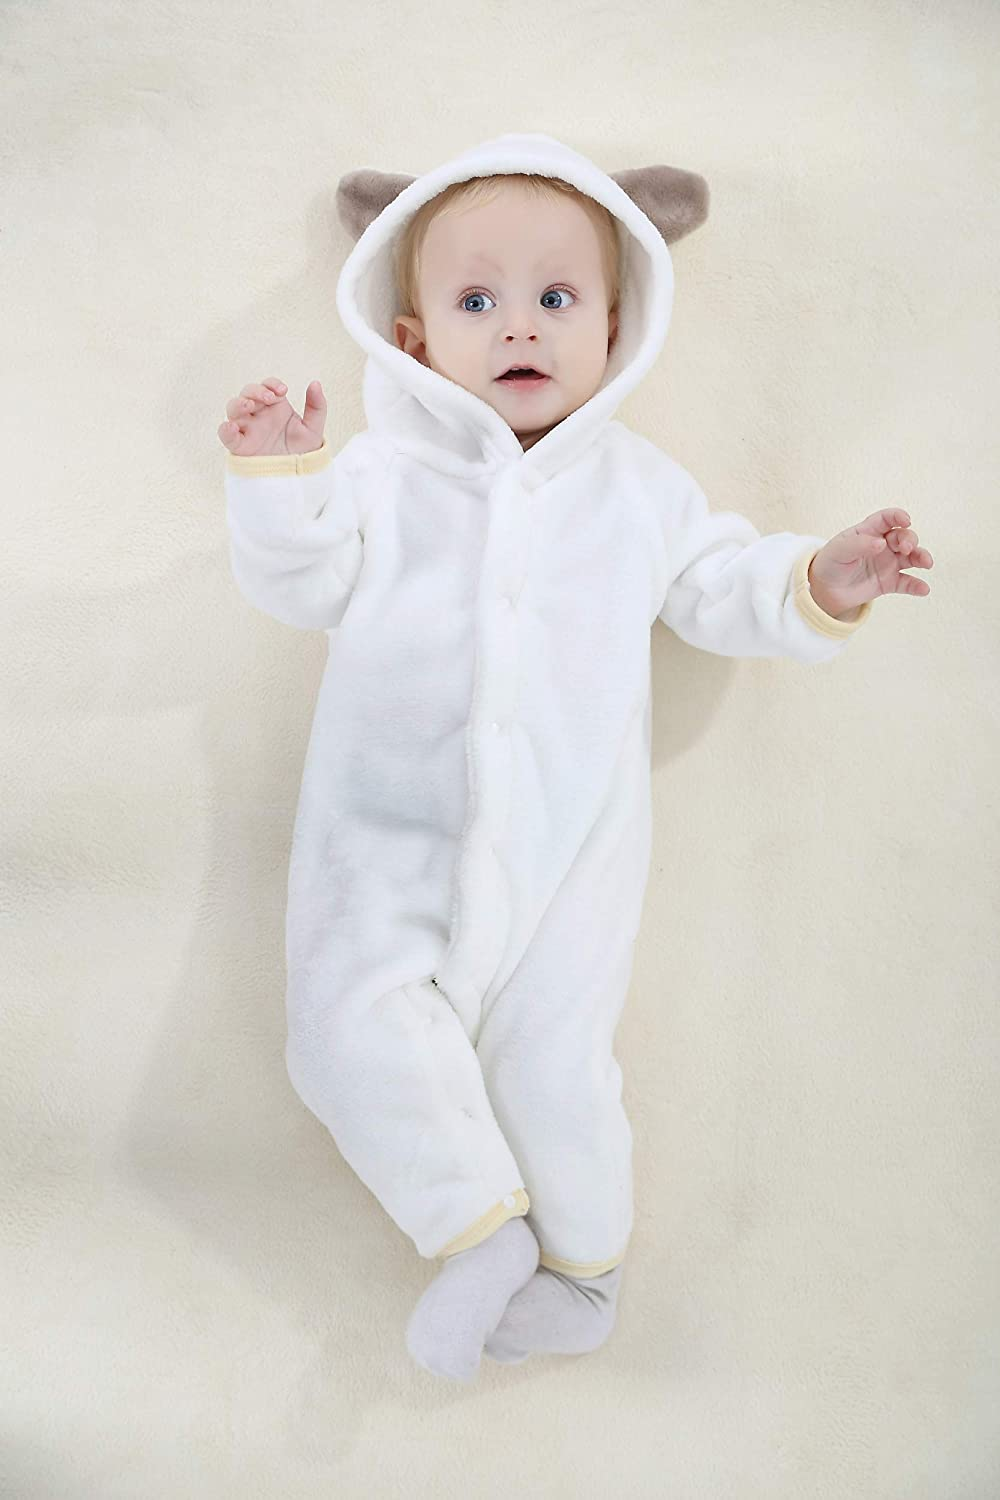 Baby Girls Boys Romper Bear Style Jumpsuit Outfit Hoody Coat Cosplay Clothes Infant Rompers Toddler Clothing